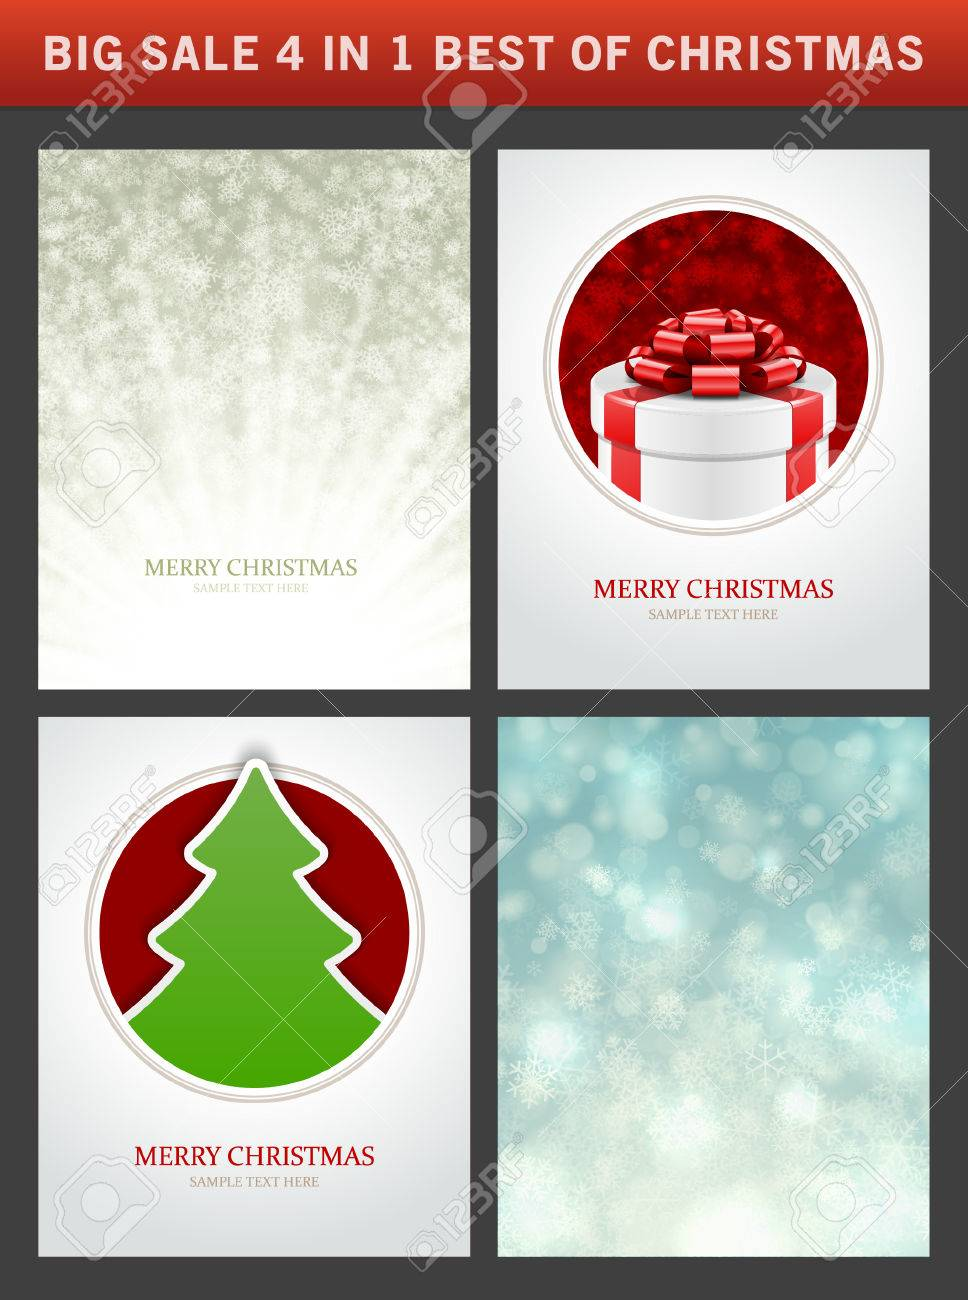 Christmas Vector Backgrounds Set Greeting Cards Banners Or